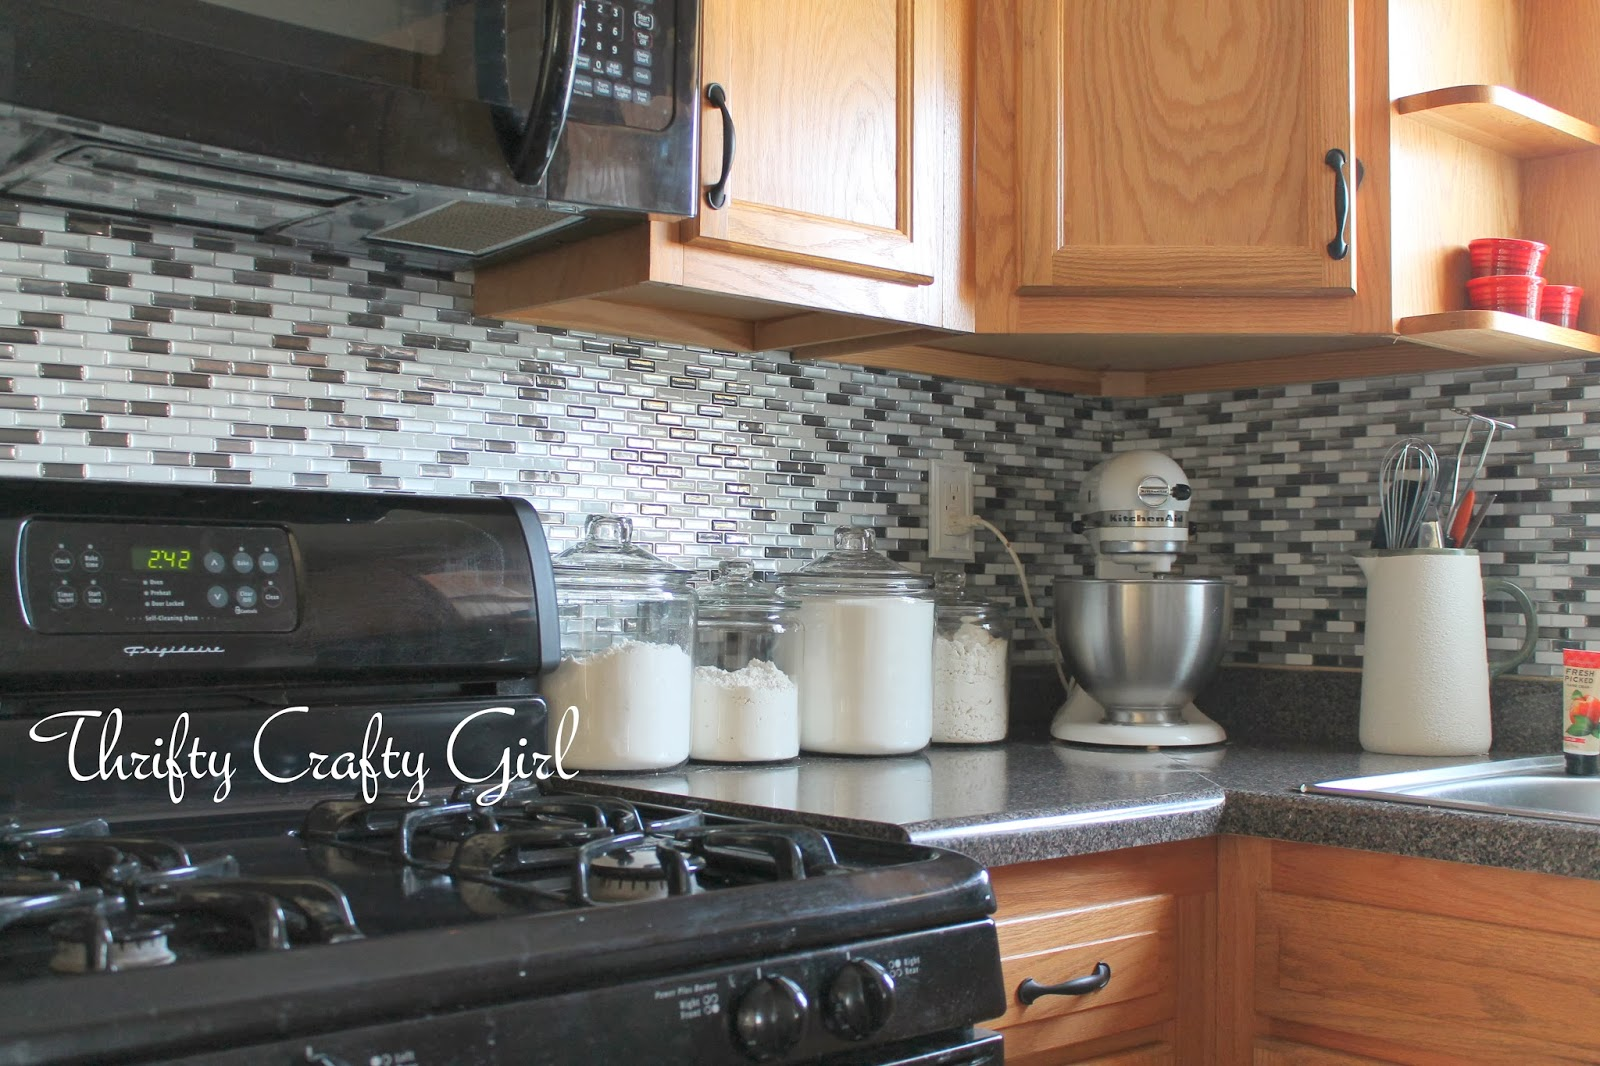 Thrifty crafty girl easy kitchen backsplash with smart tiles easy kitchen backsplash with smart tiles dailygadgetfo Gallery